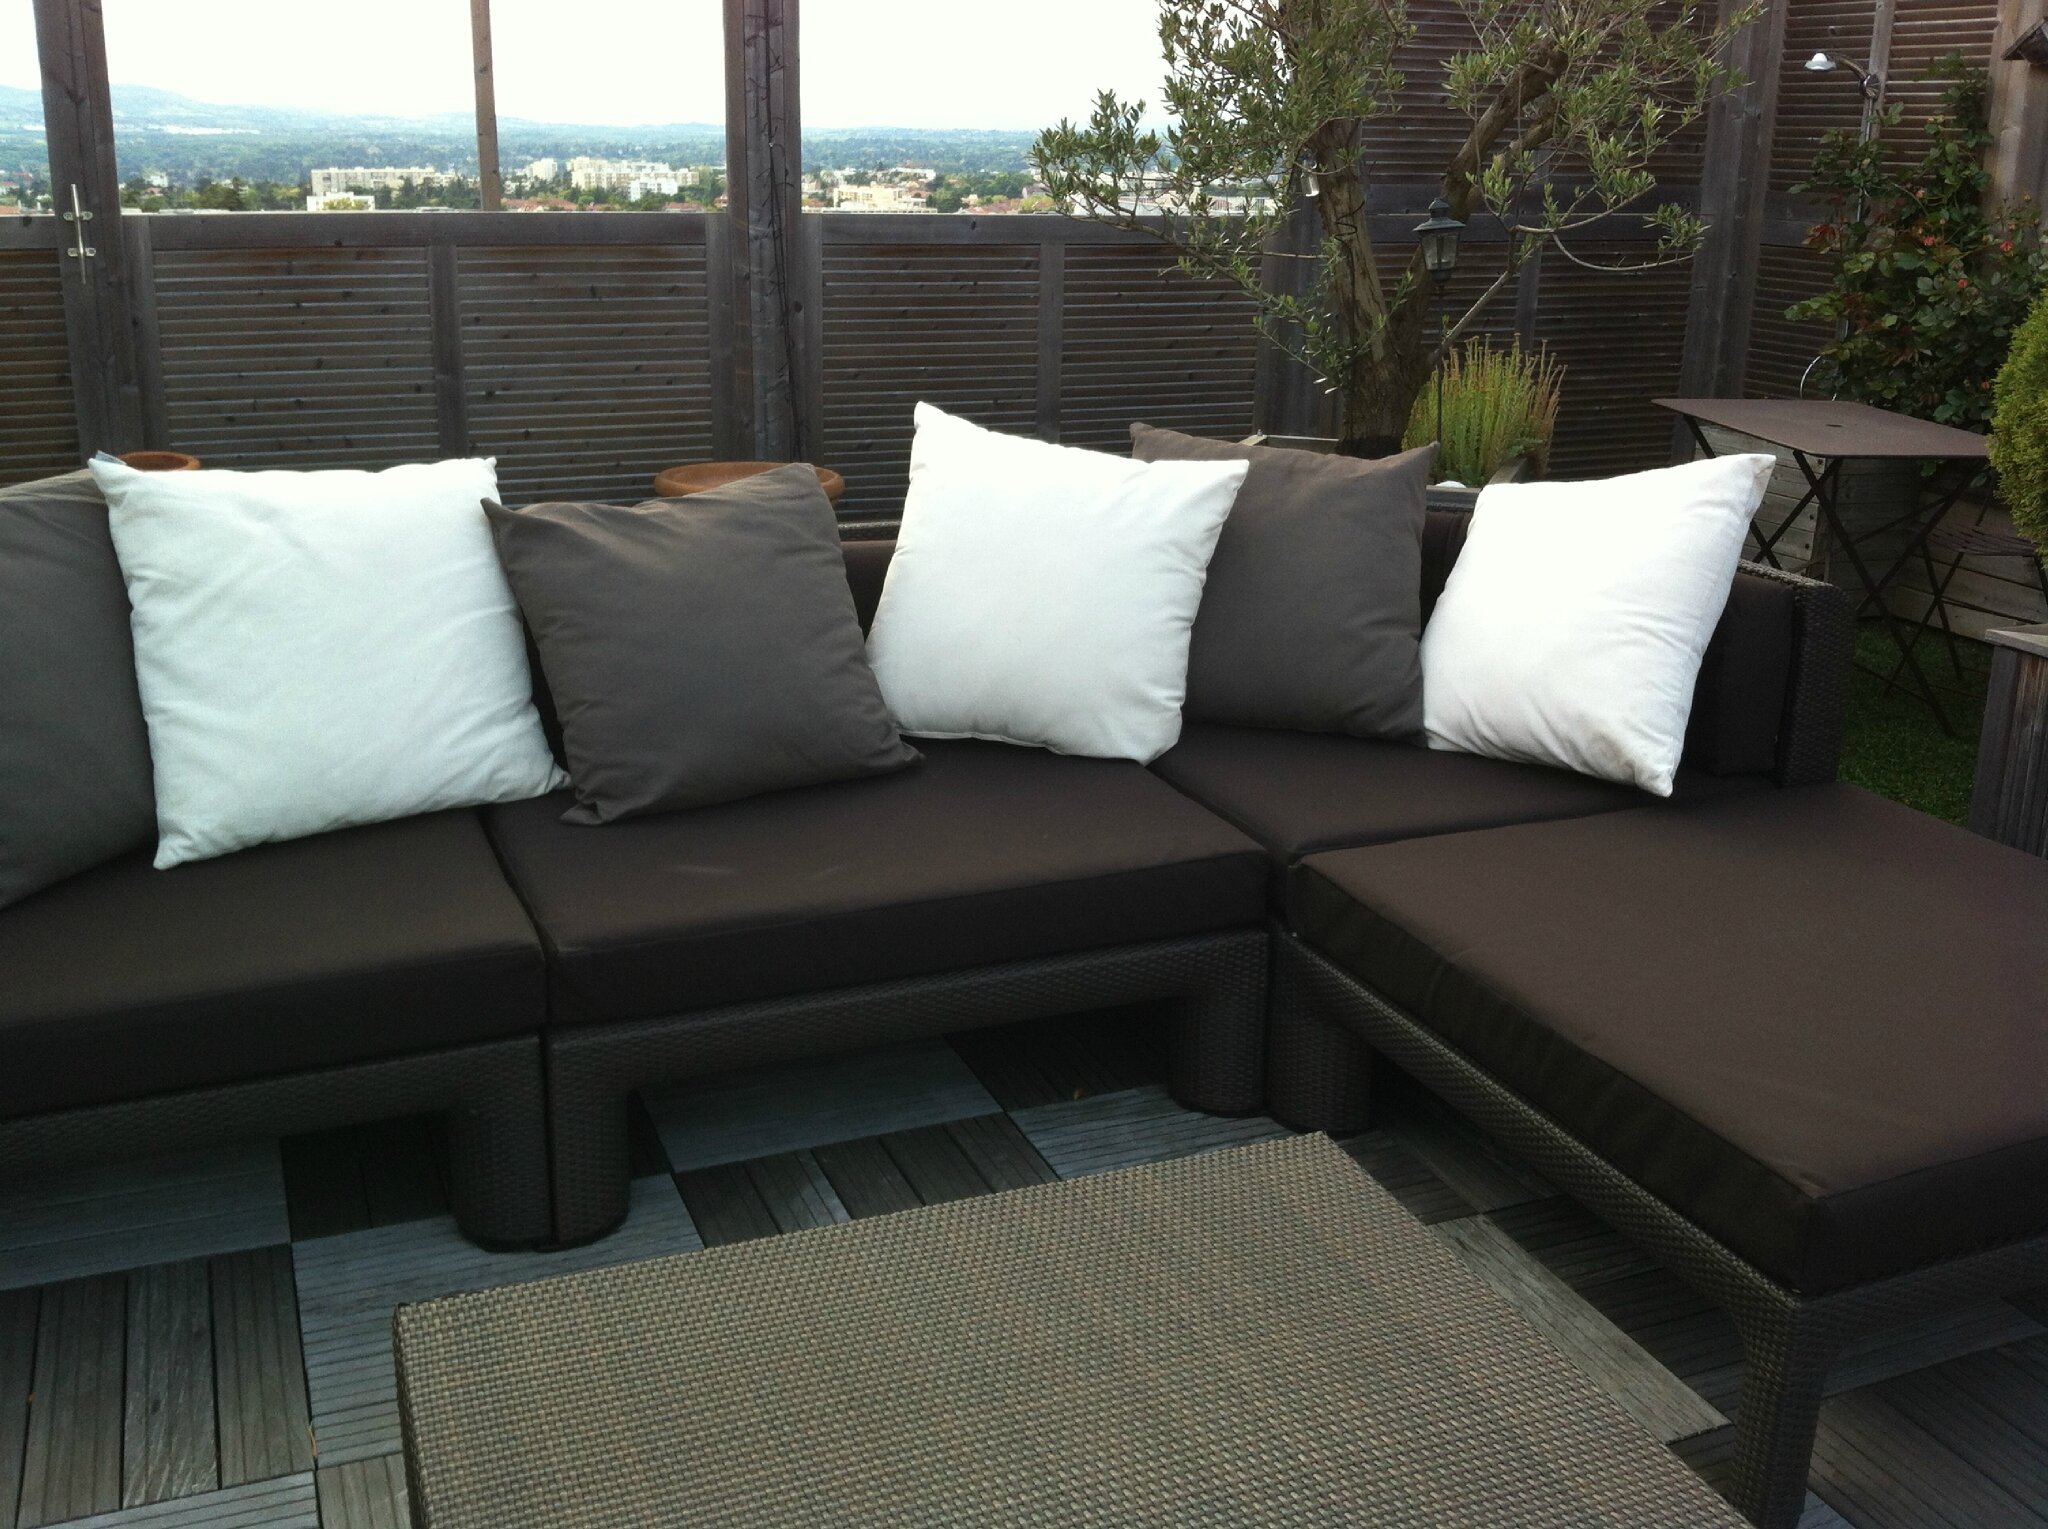 Housse canape sur terrasse atelier virginie morel at home for Grand coussin pour canape